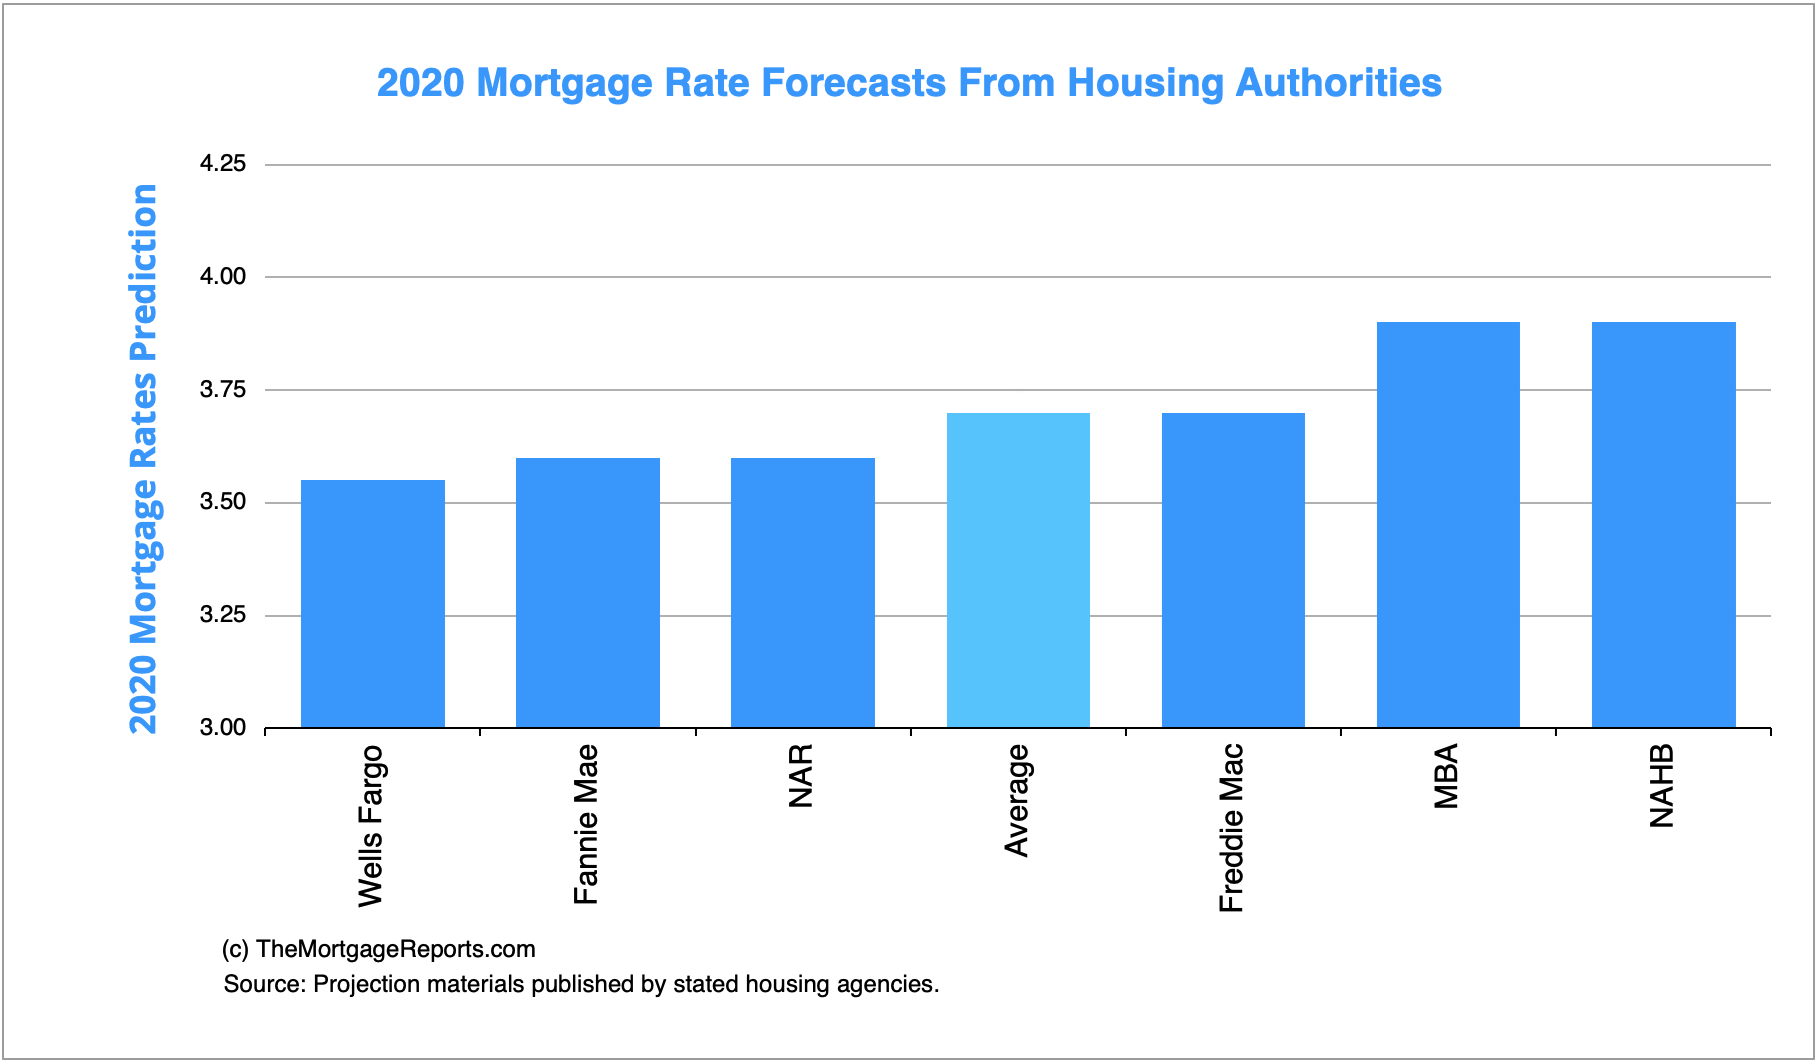 2020 Mortgage Rate Forecasts from Housing Authorities, The Mortgage Reports